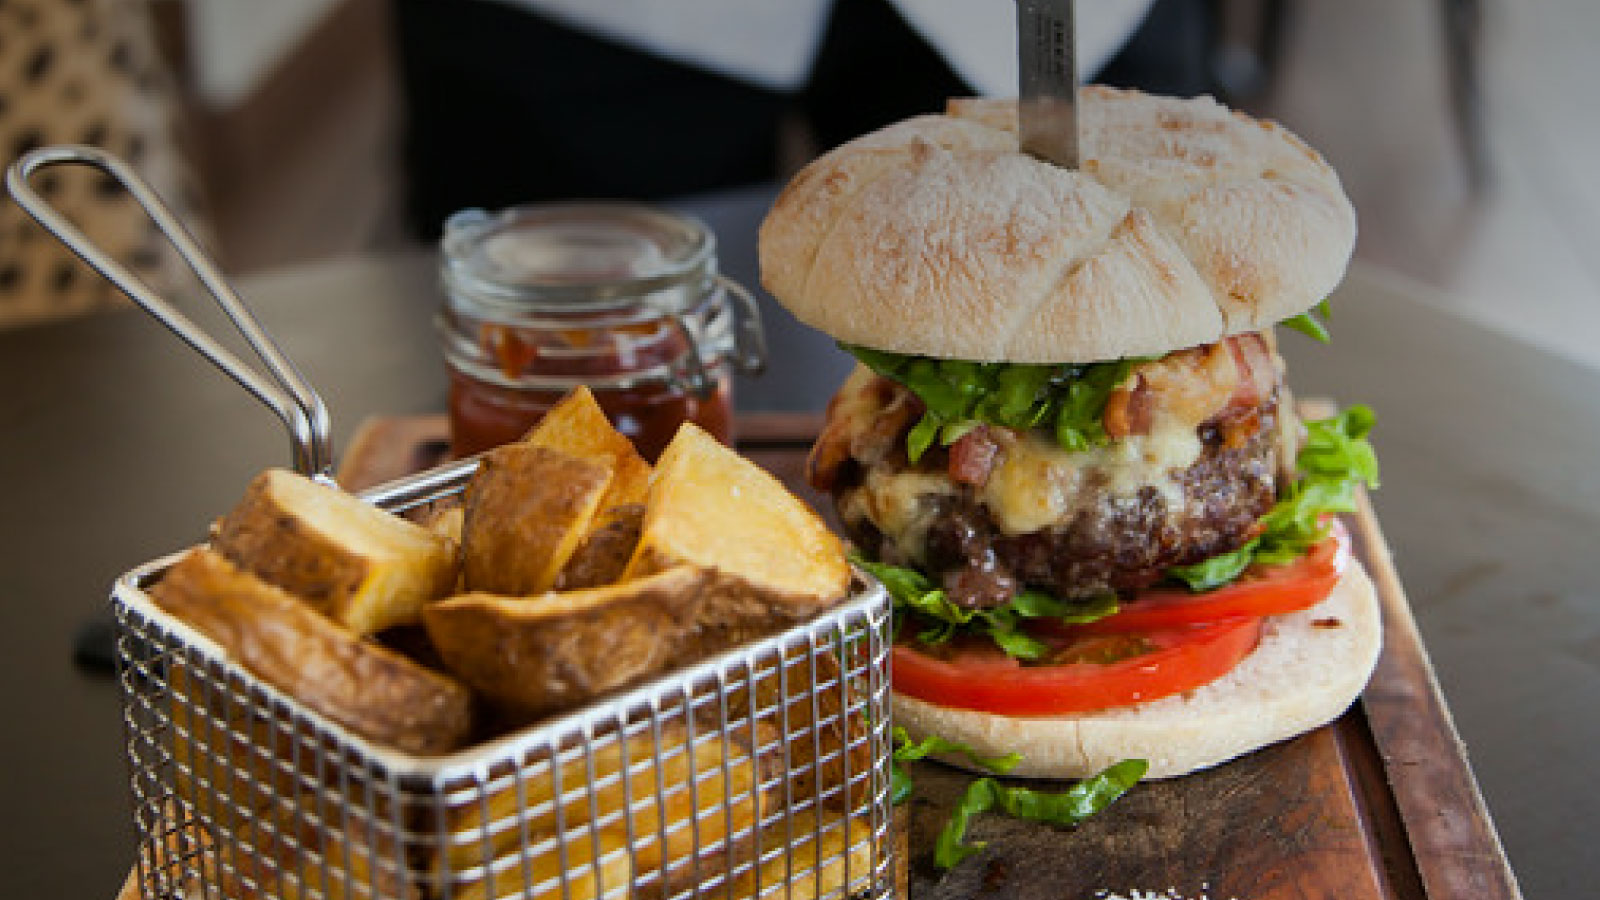 Knife in beef burger with chunky chips